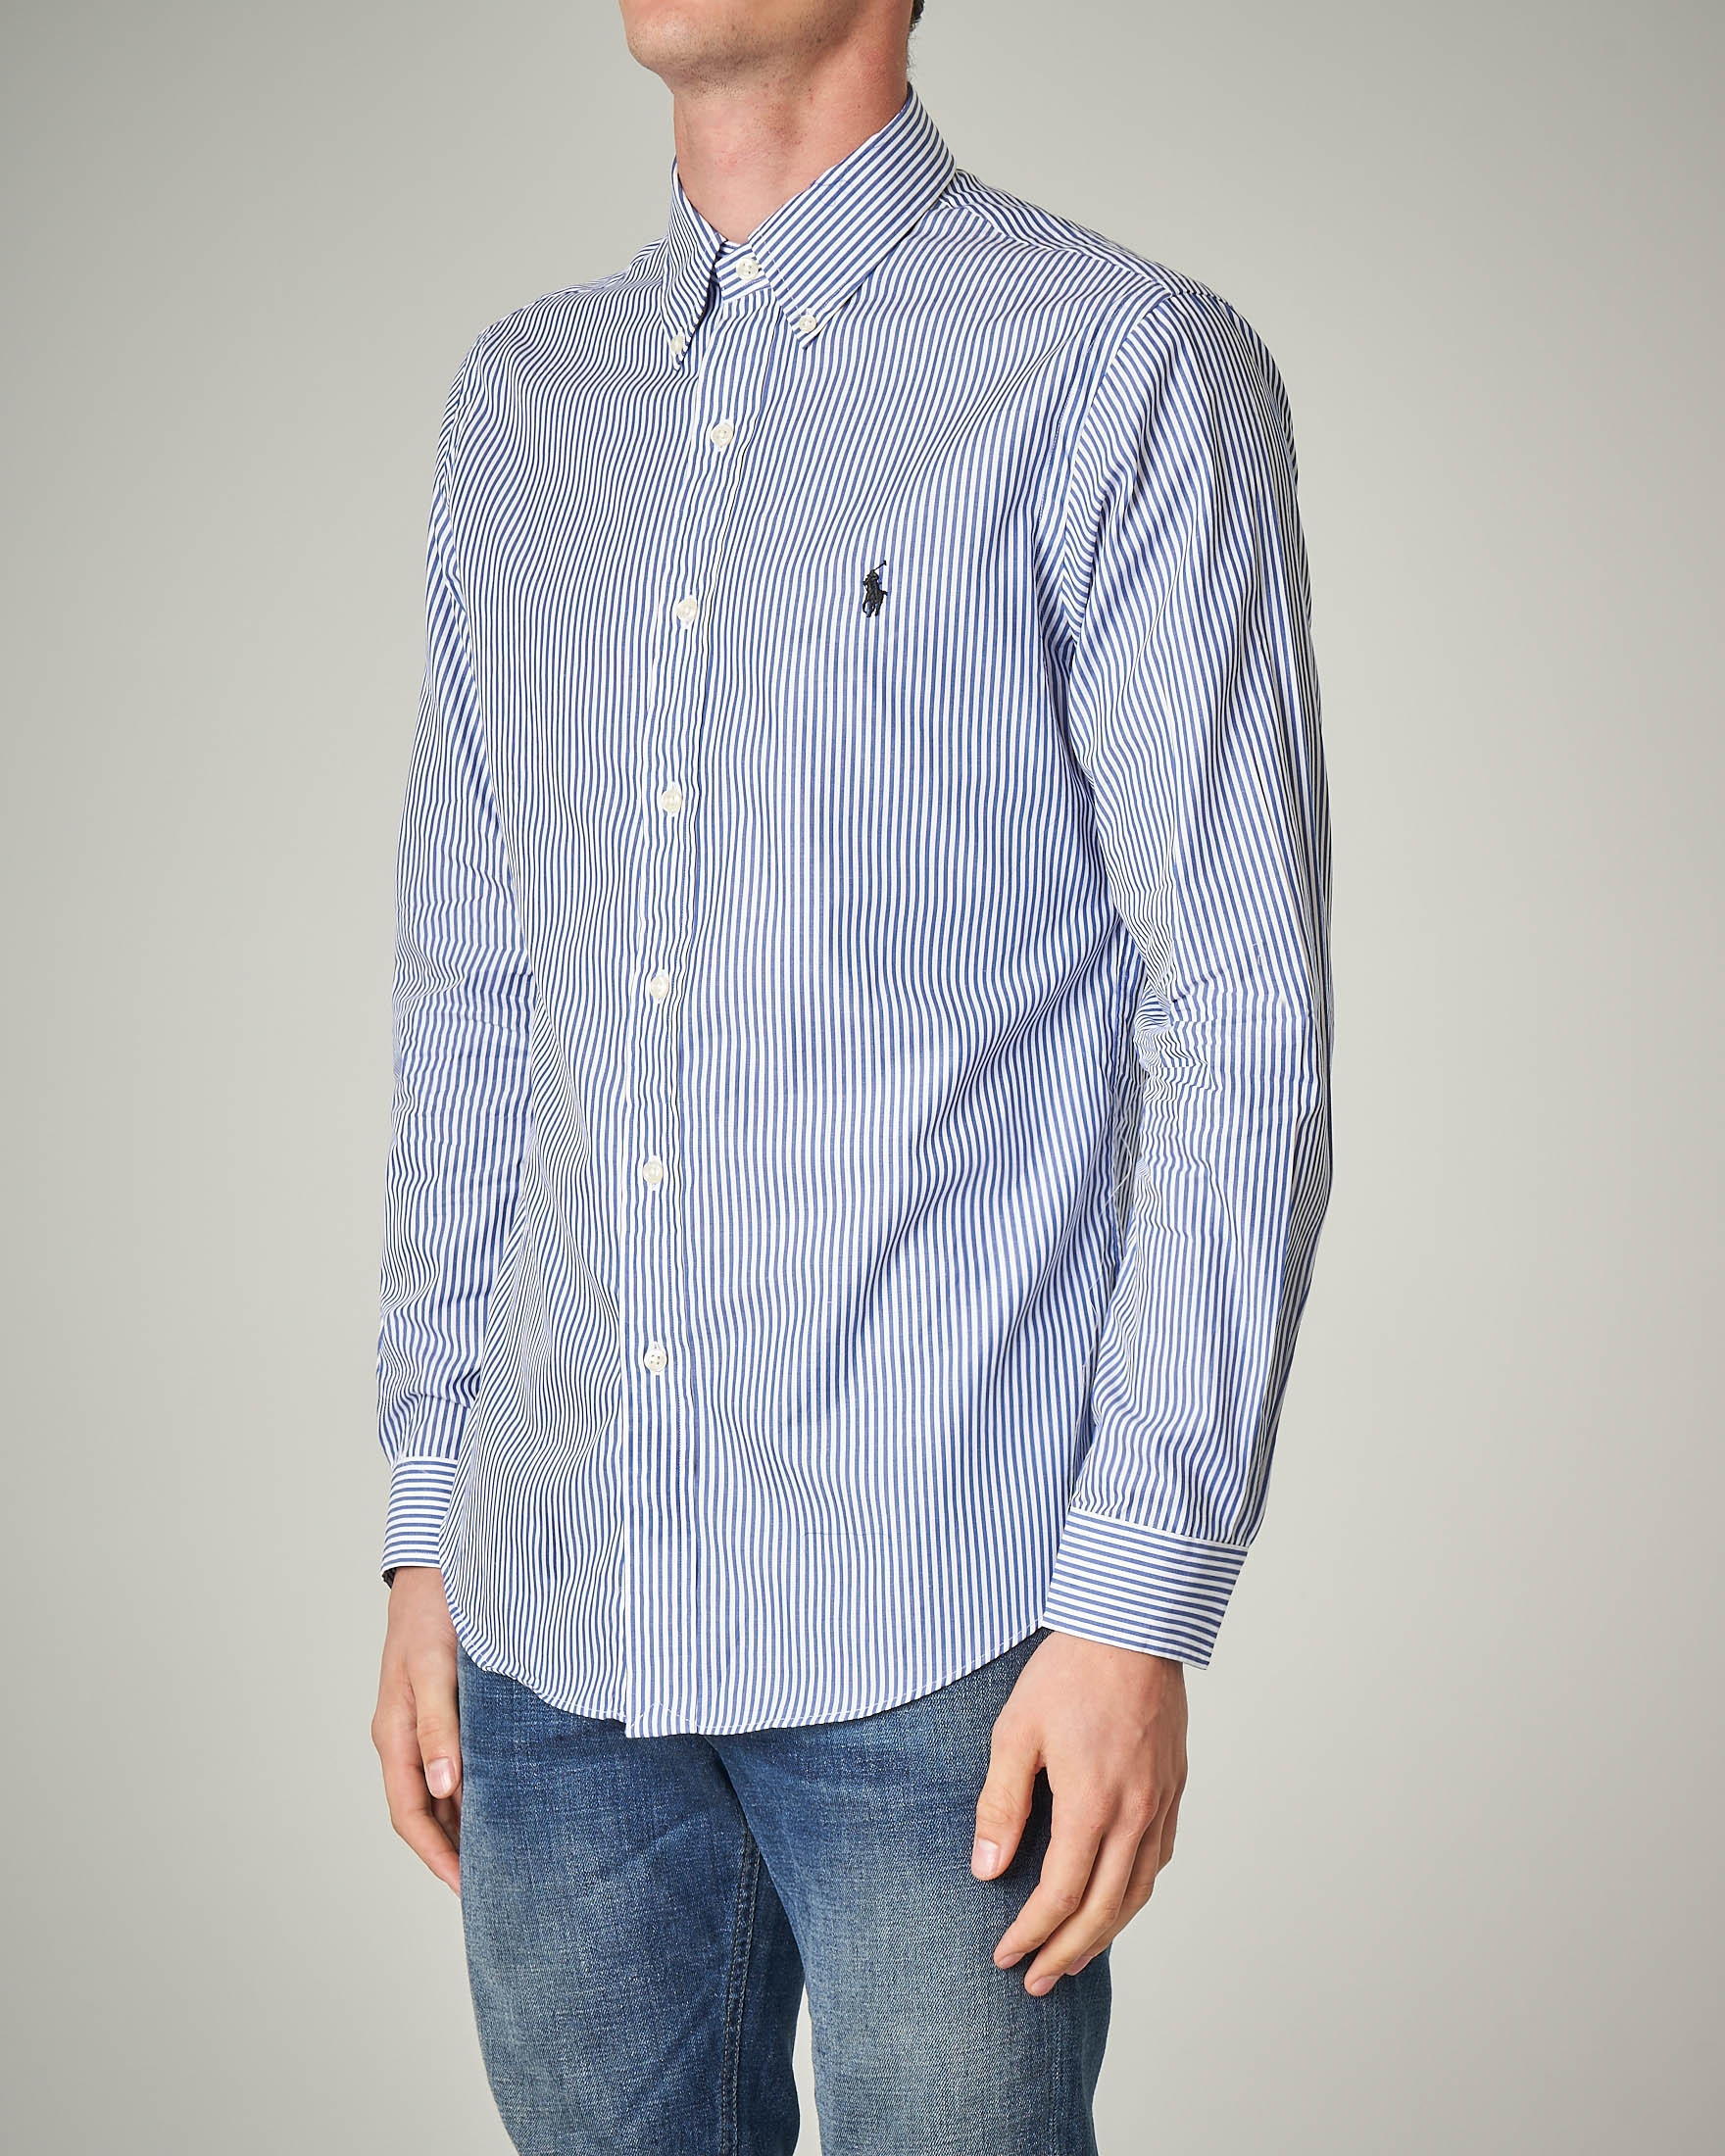 Camicia a bastoncino bianco-blu button down